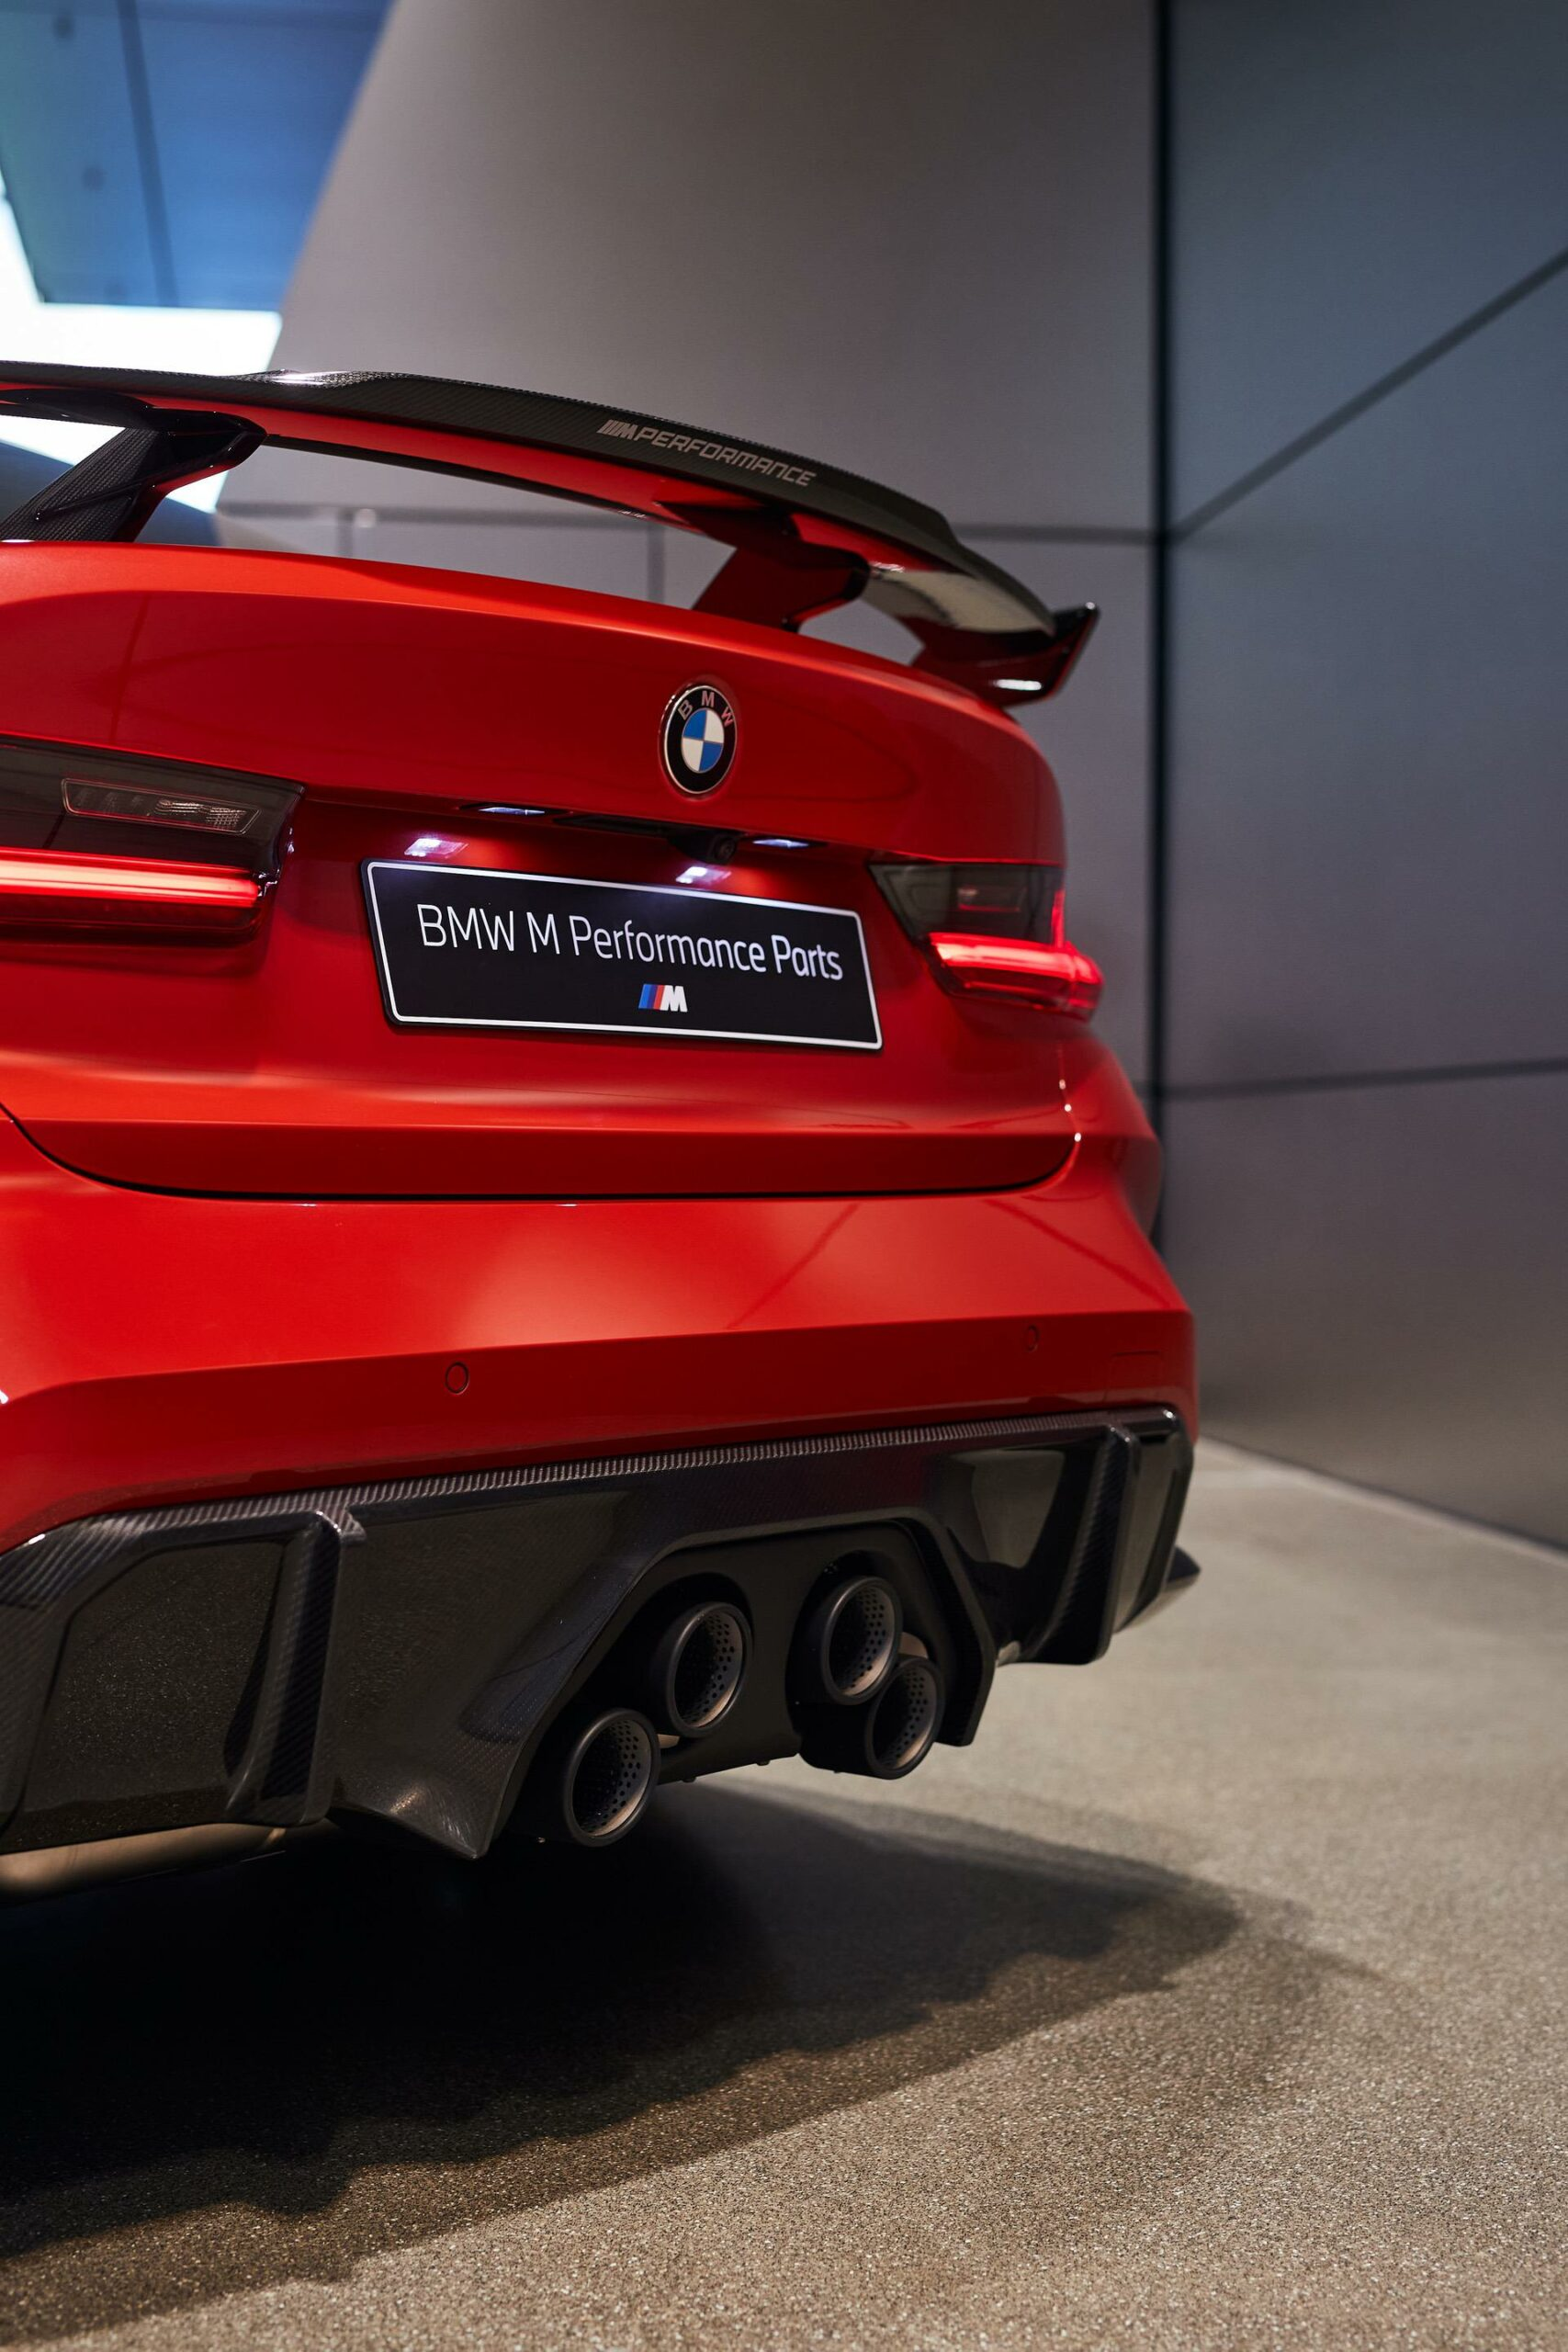 bmw m3 g80 with m performance parts displayed at the bmw welt